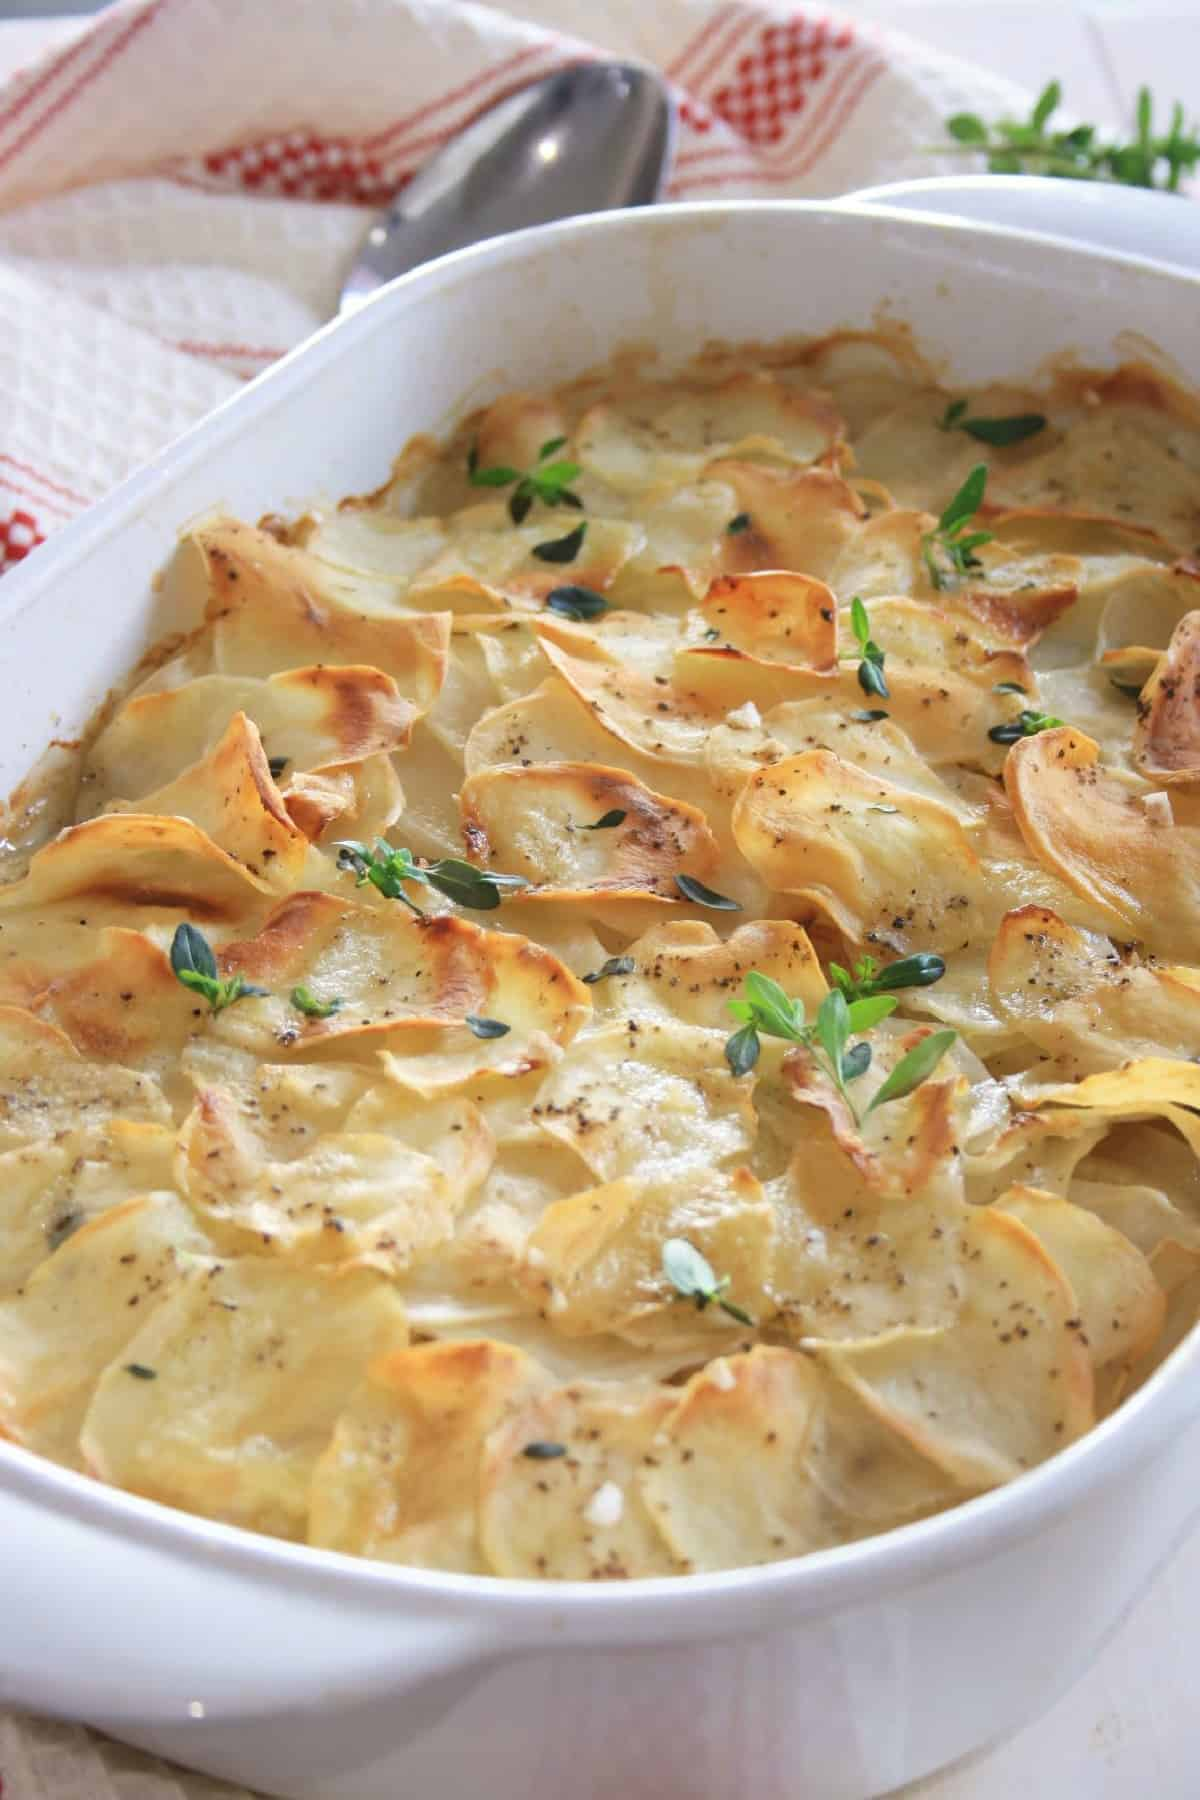 cooked potato bake with a spoon to the side of the dish.